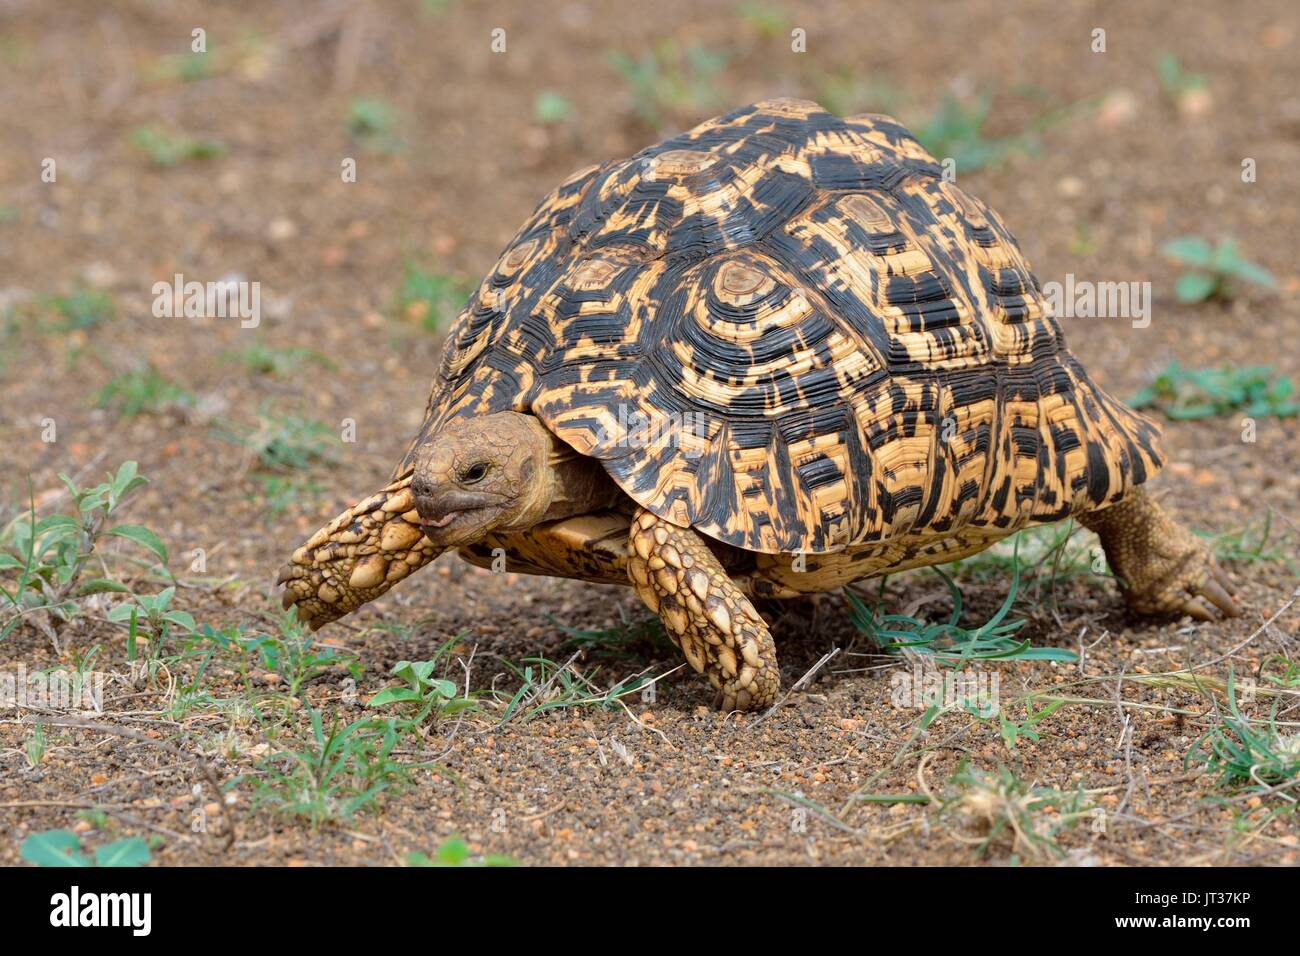 Leopard tortoise (Stigmochelys pardalis), moving, Kruger National Park, South Africa, Africa - Stock Image